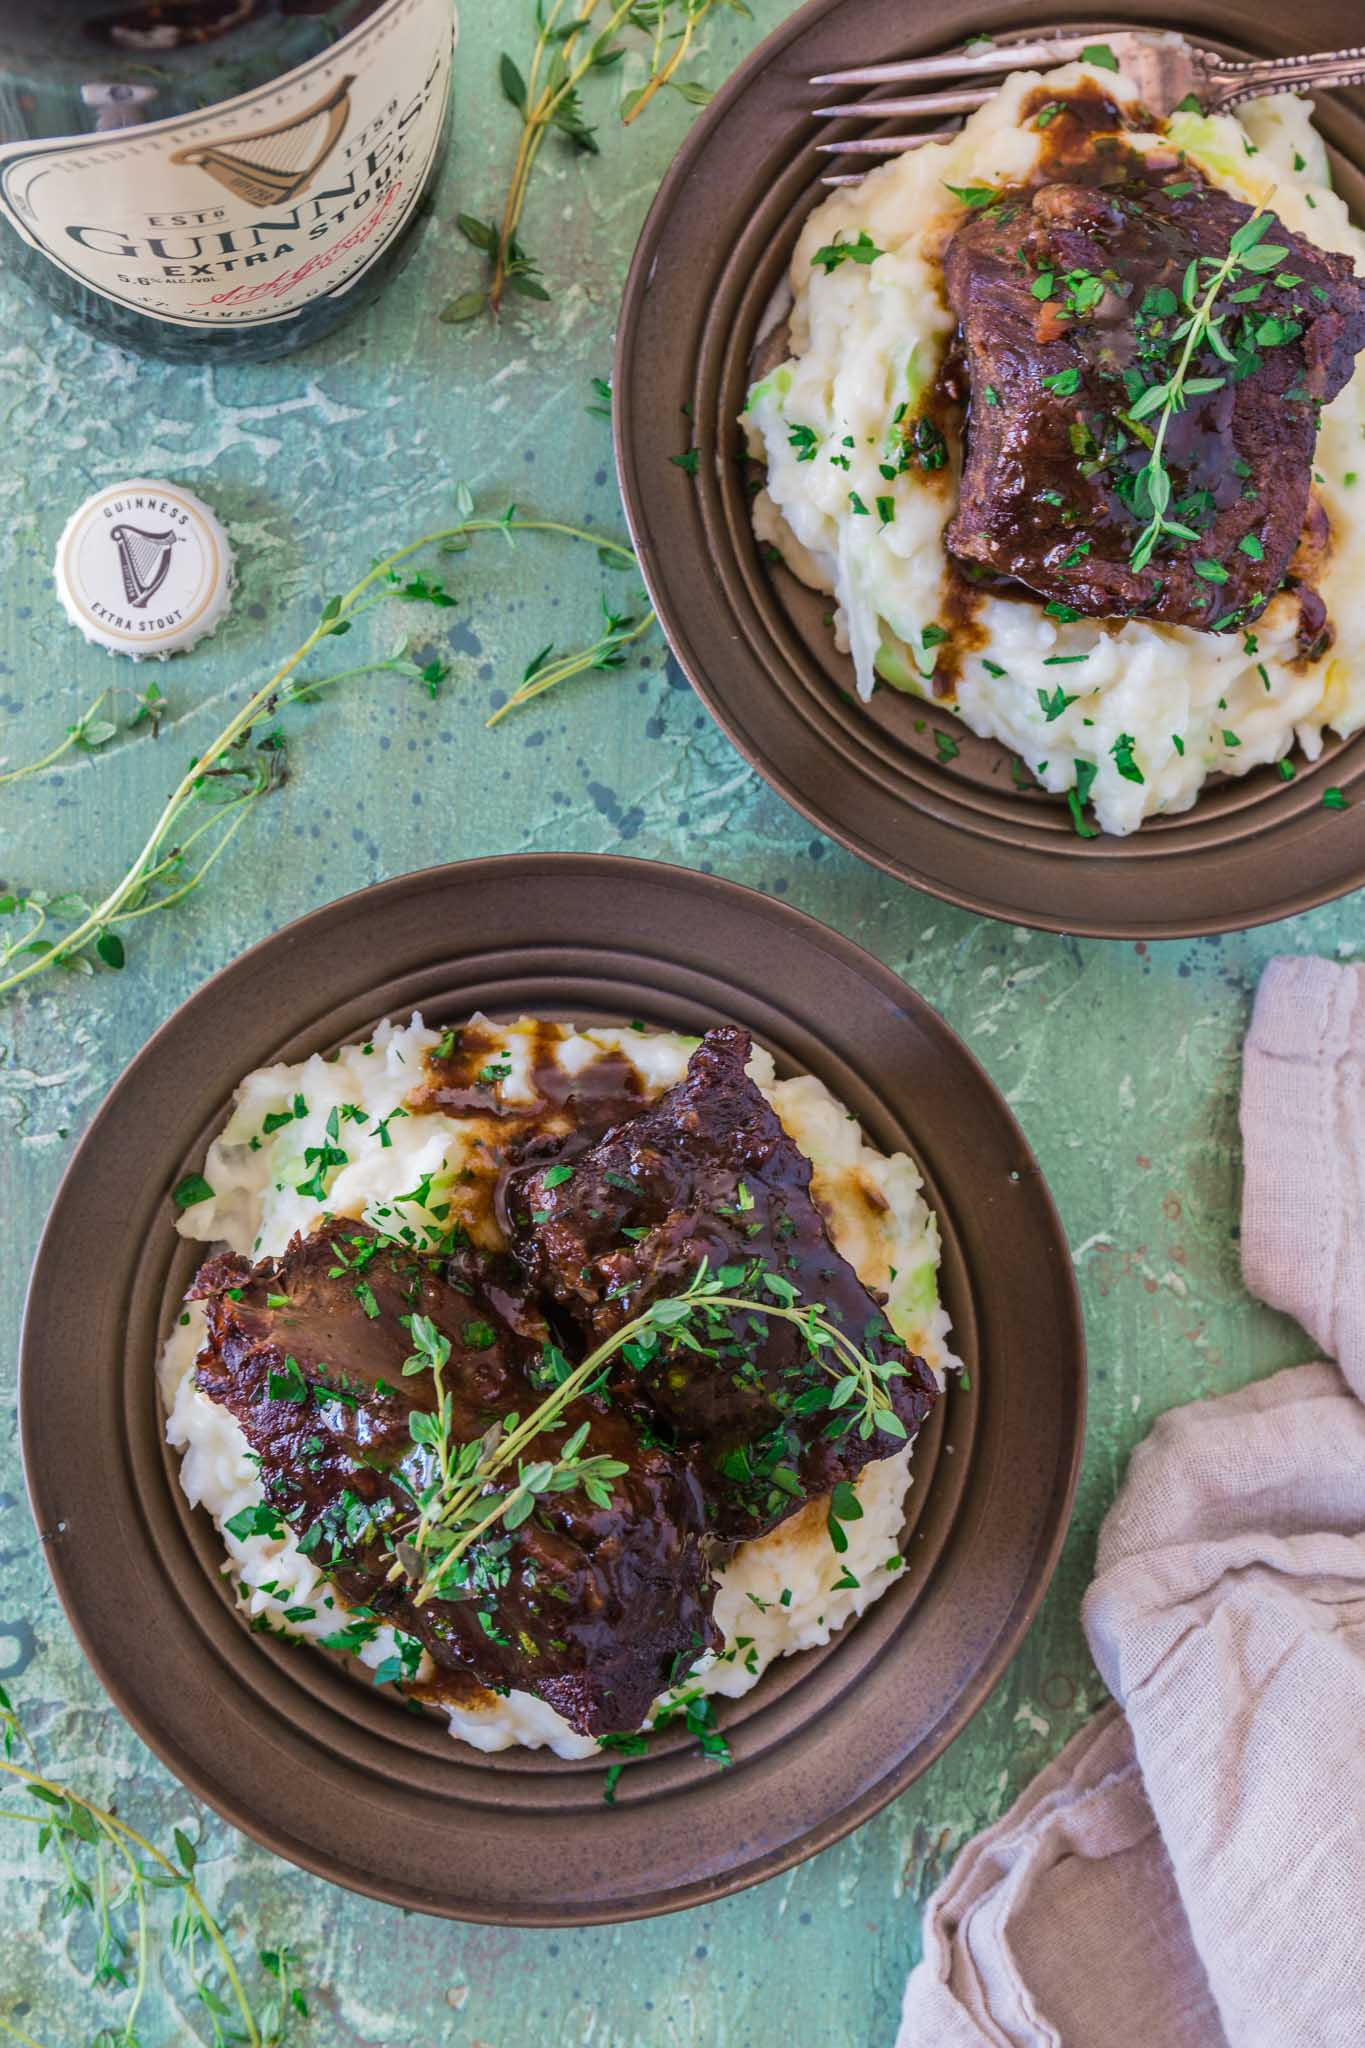 Stout Beer Braised Short Ribs | www.oliviascuisine.com | Celebrate St. Patrick's Day by cooking these Irish inspired Stout Beer Braised Short Ribs. Rich, hearty and incredibly fall-apart tender! Serve it over colcannon or with some Irish soda bread to soak up all that luscious beer gravy goodness. (Recipe and food photography by @oliviascuisine.)